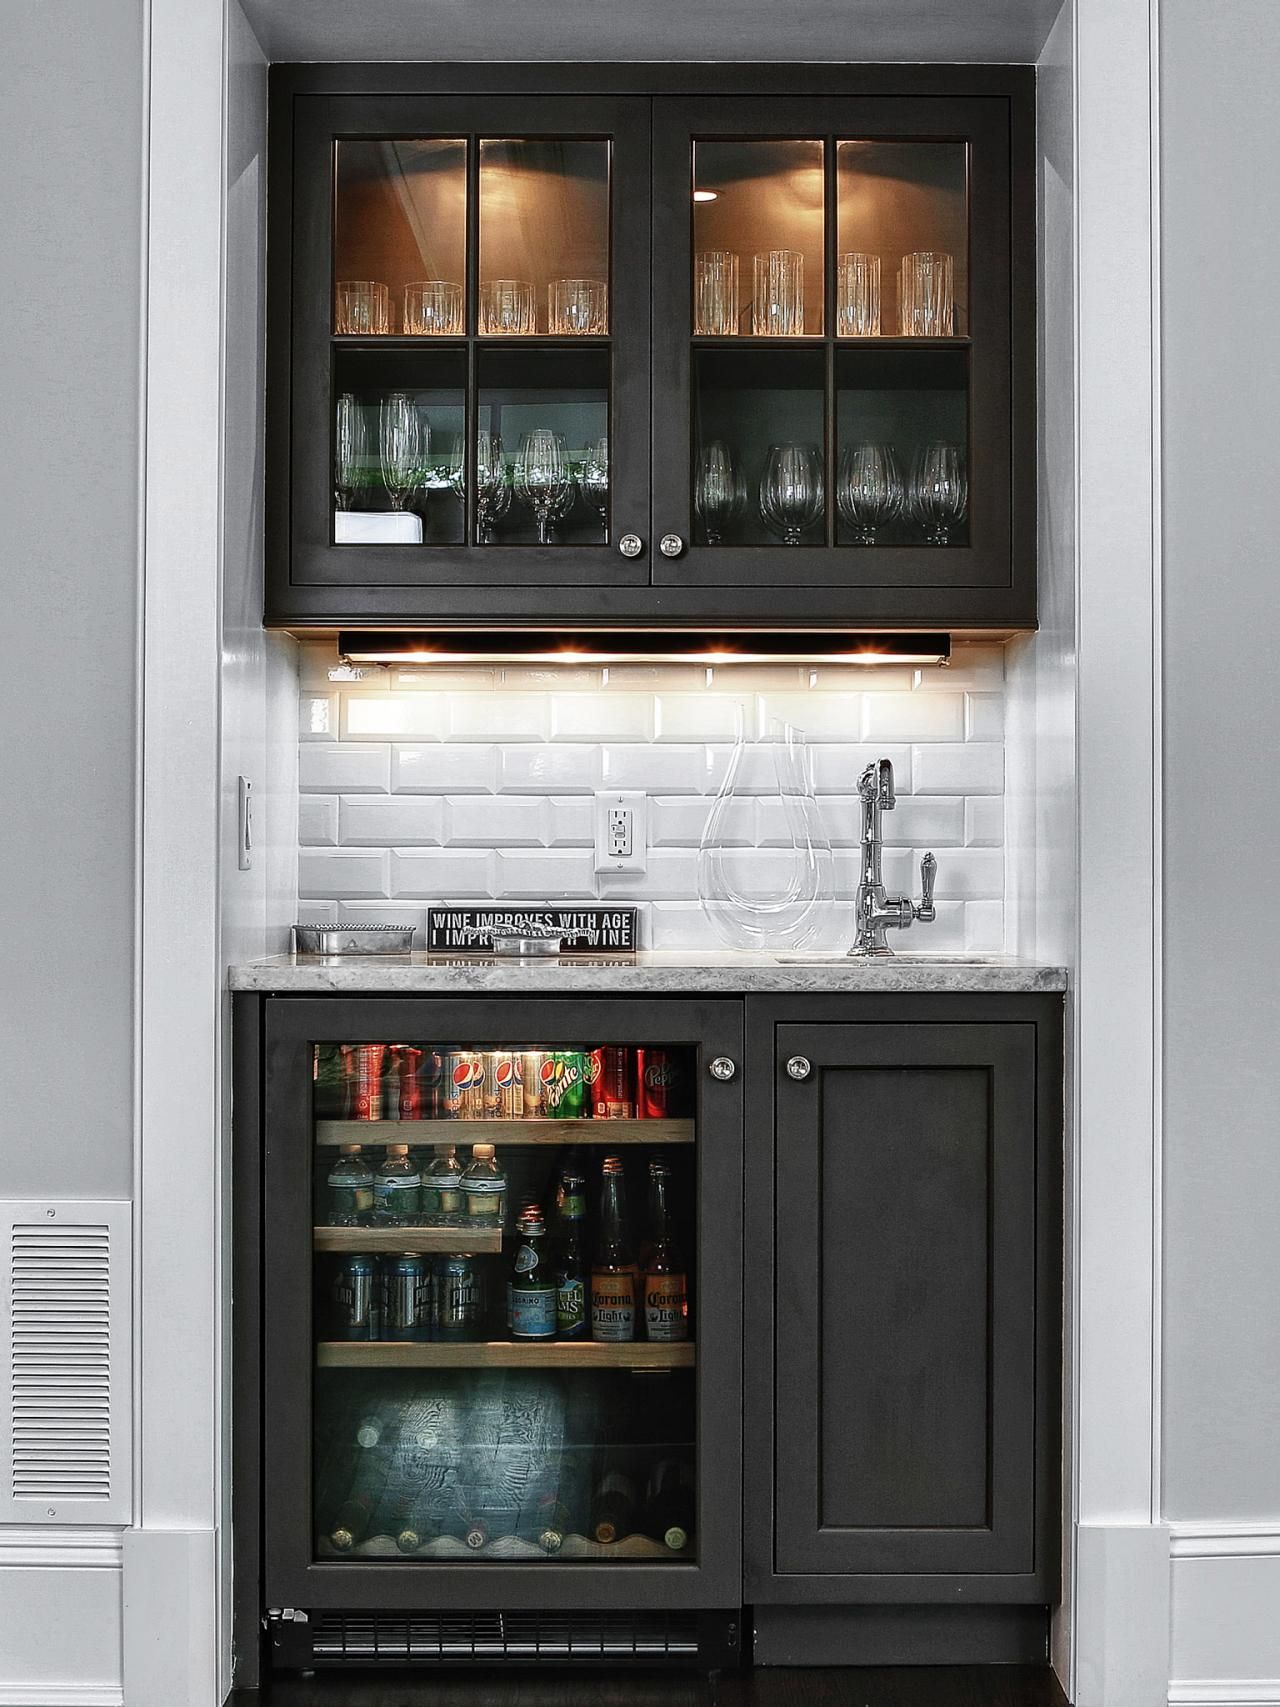 15 Stylish Small Home Bar Ideas | Design-projekte, Haus design und ...